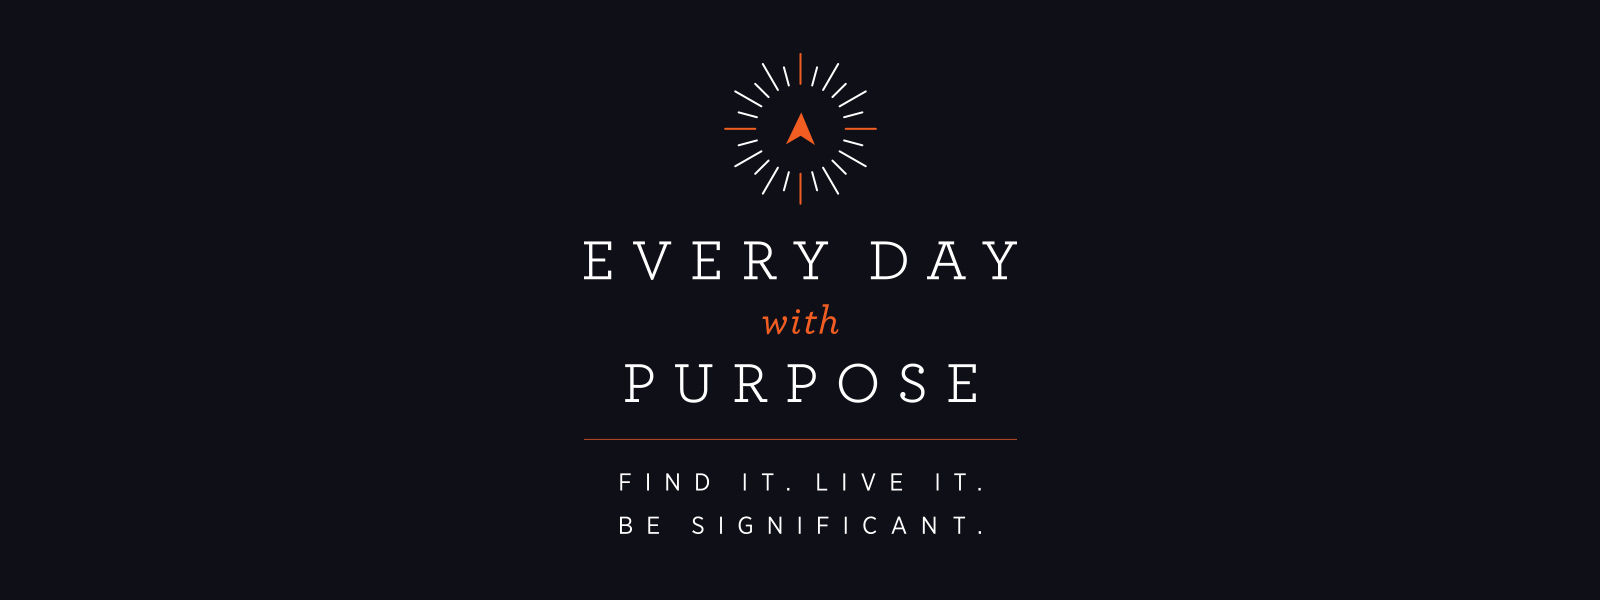 Every Day With Purpose